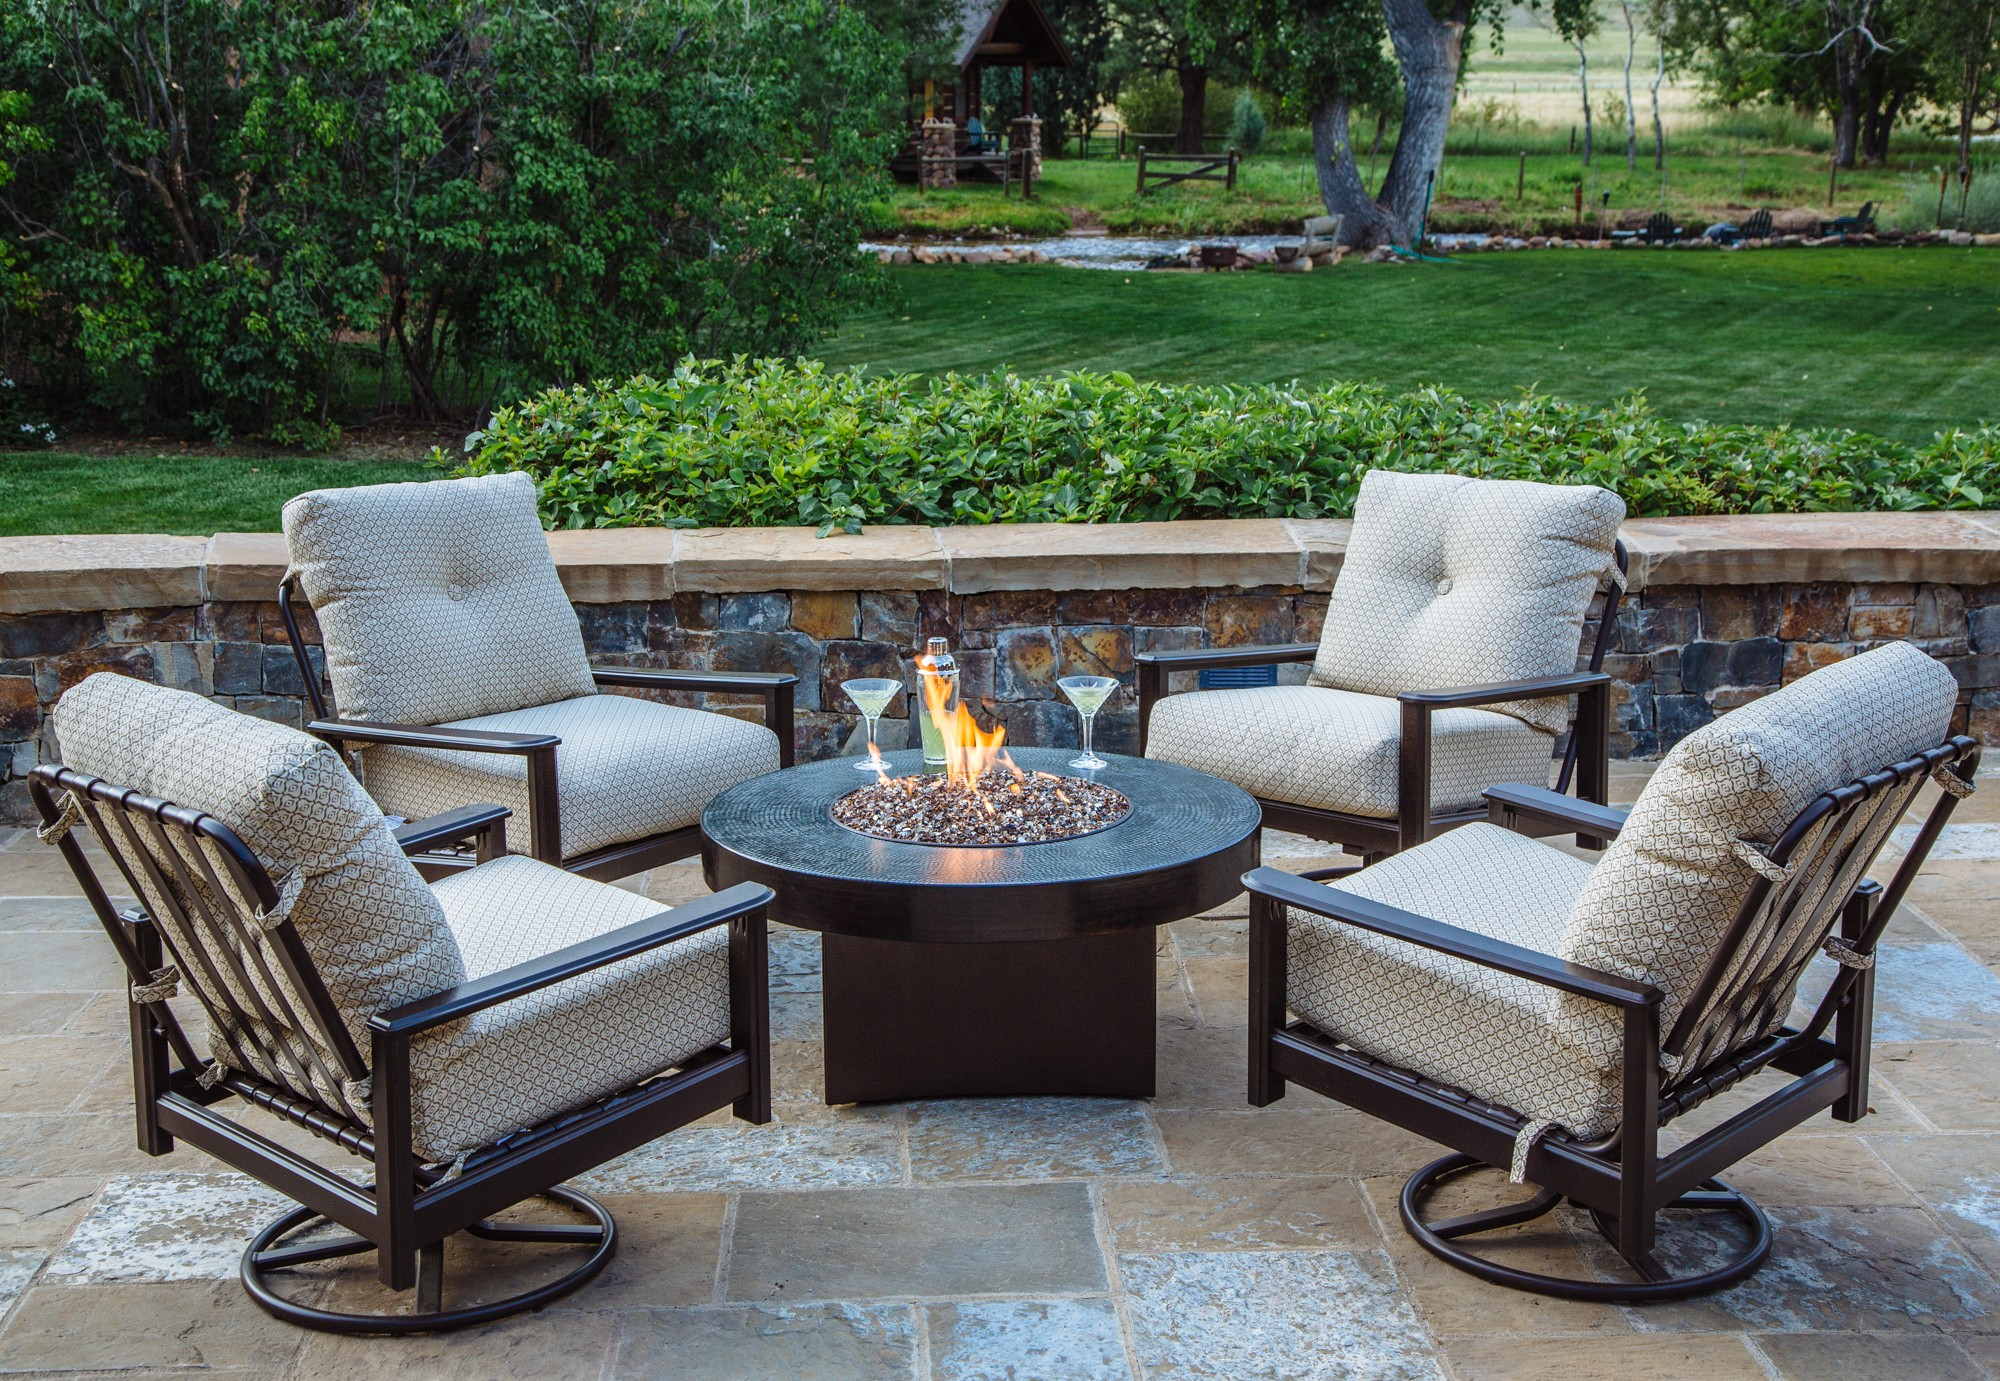 Copper Fire Pit Table Hammered Copper Fire Pit Table throughout sizing 2000 X 1381